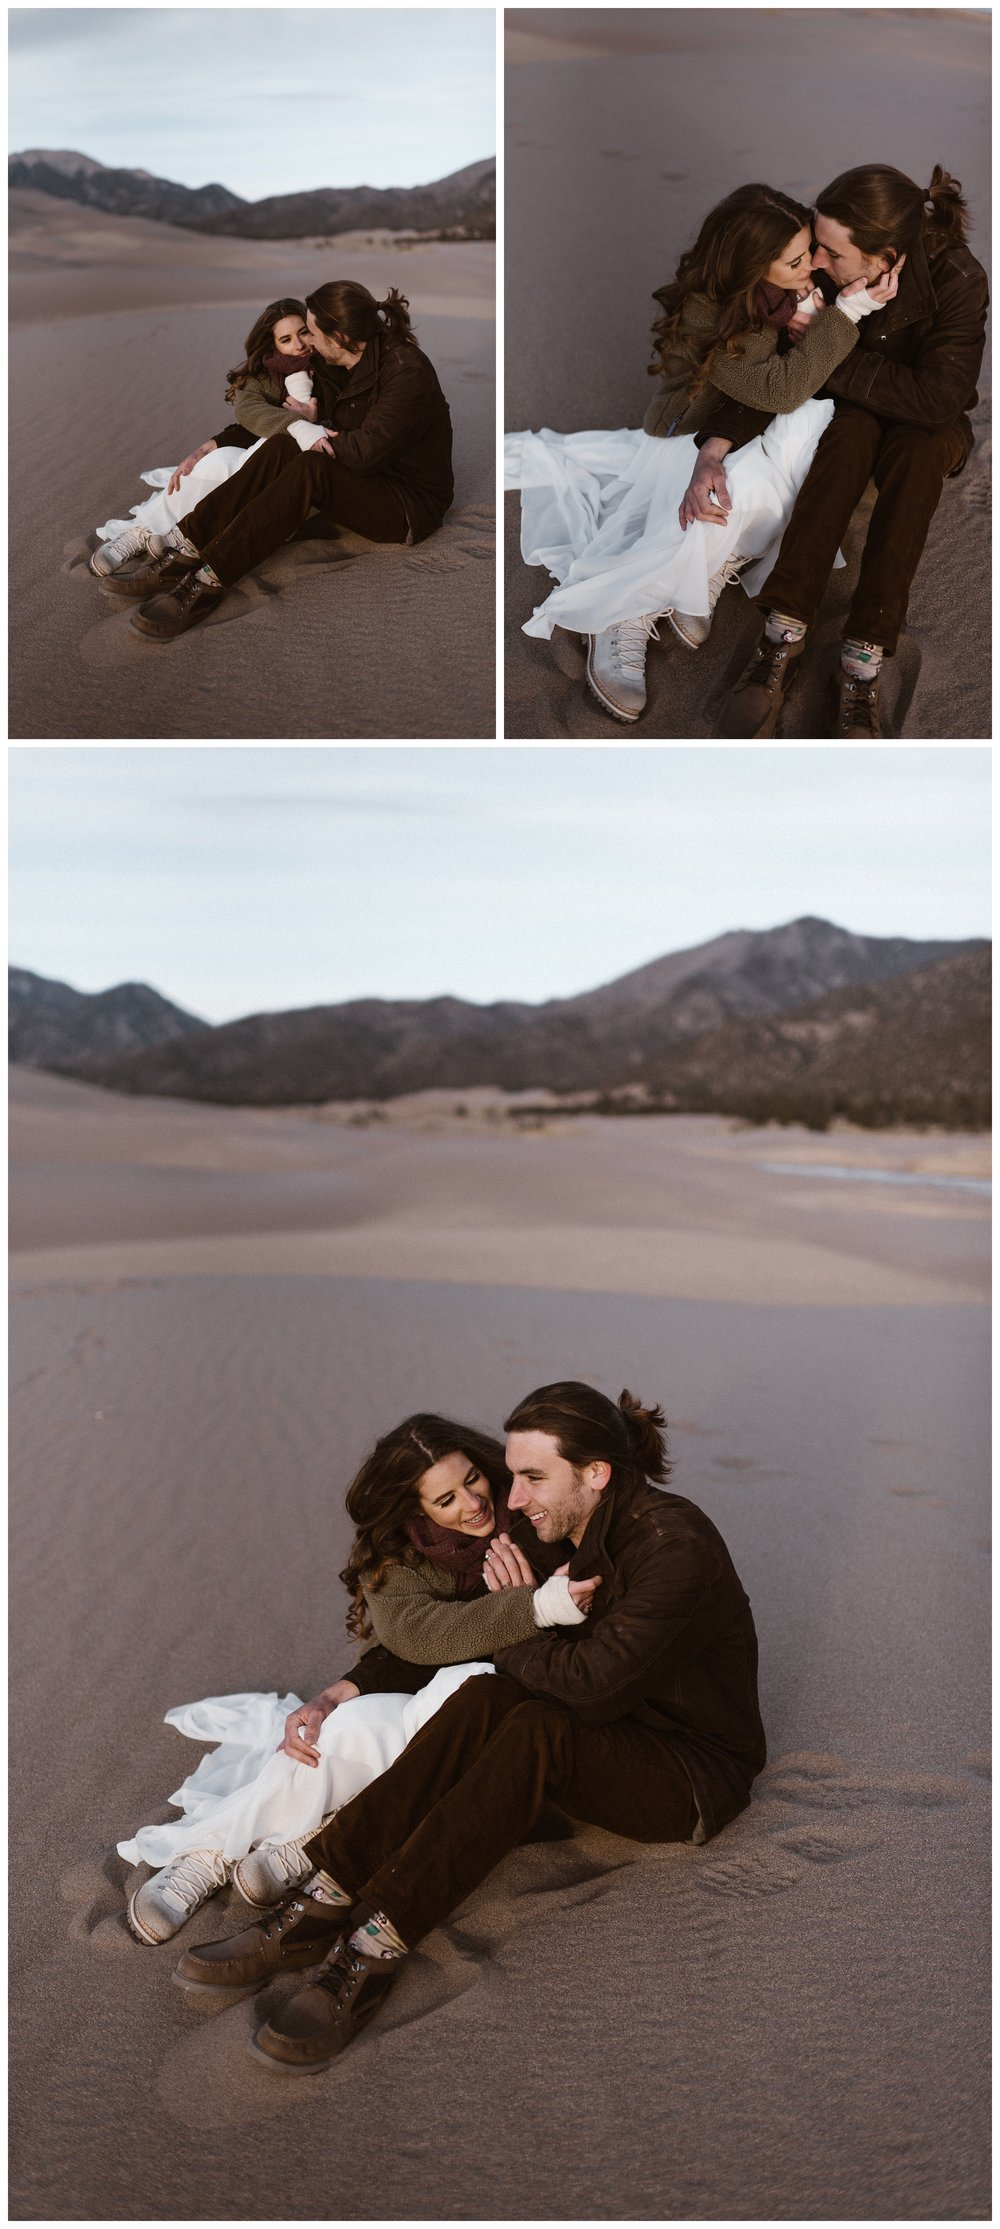 Olivia and Justin take some time to themselves after hiking the dunes of Great Sand Dunes National Park during their intimate elopement. Photo by Maddie Mae Photo, Adventures Instead.